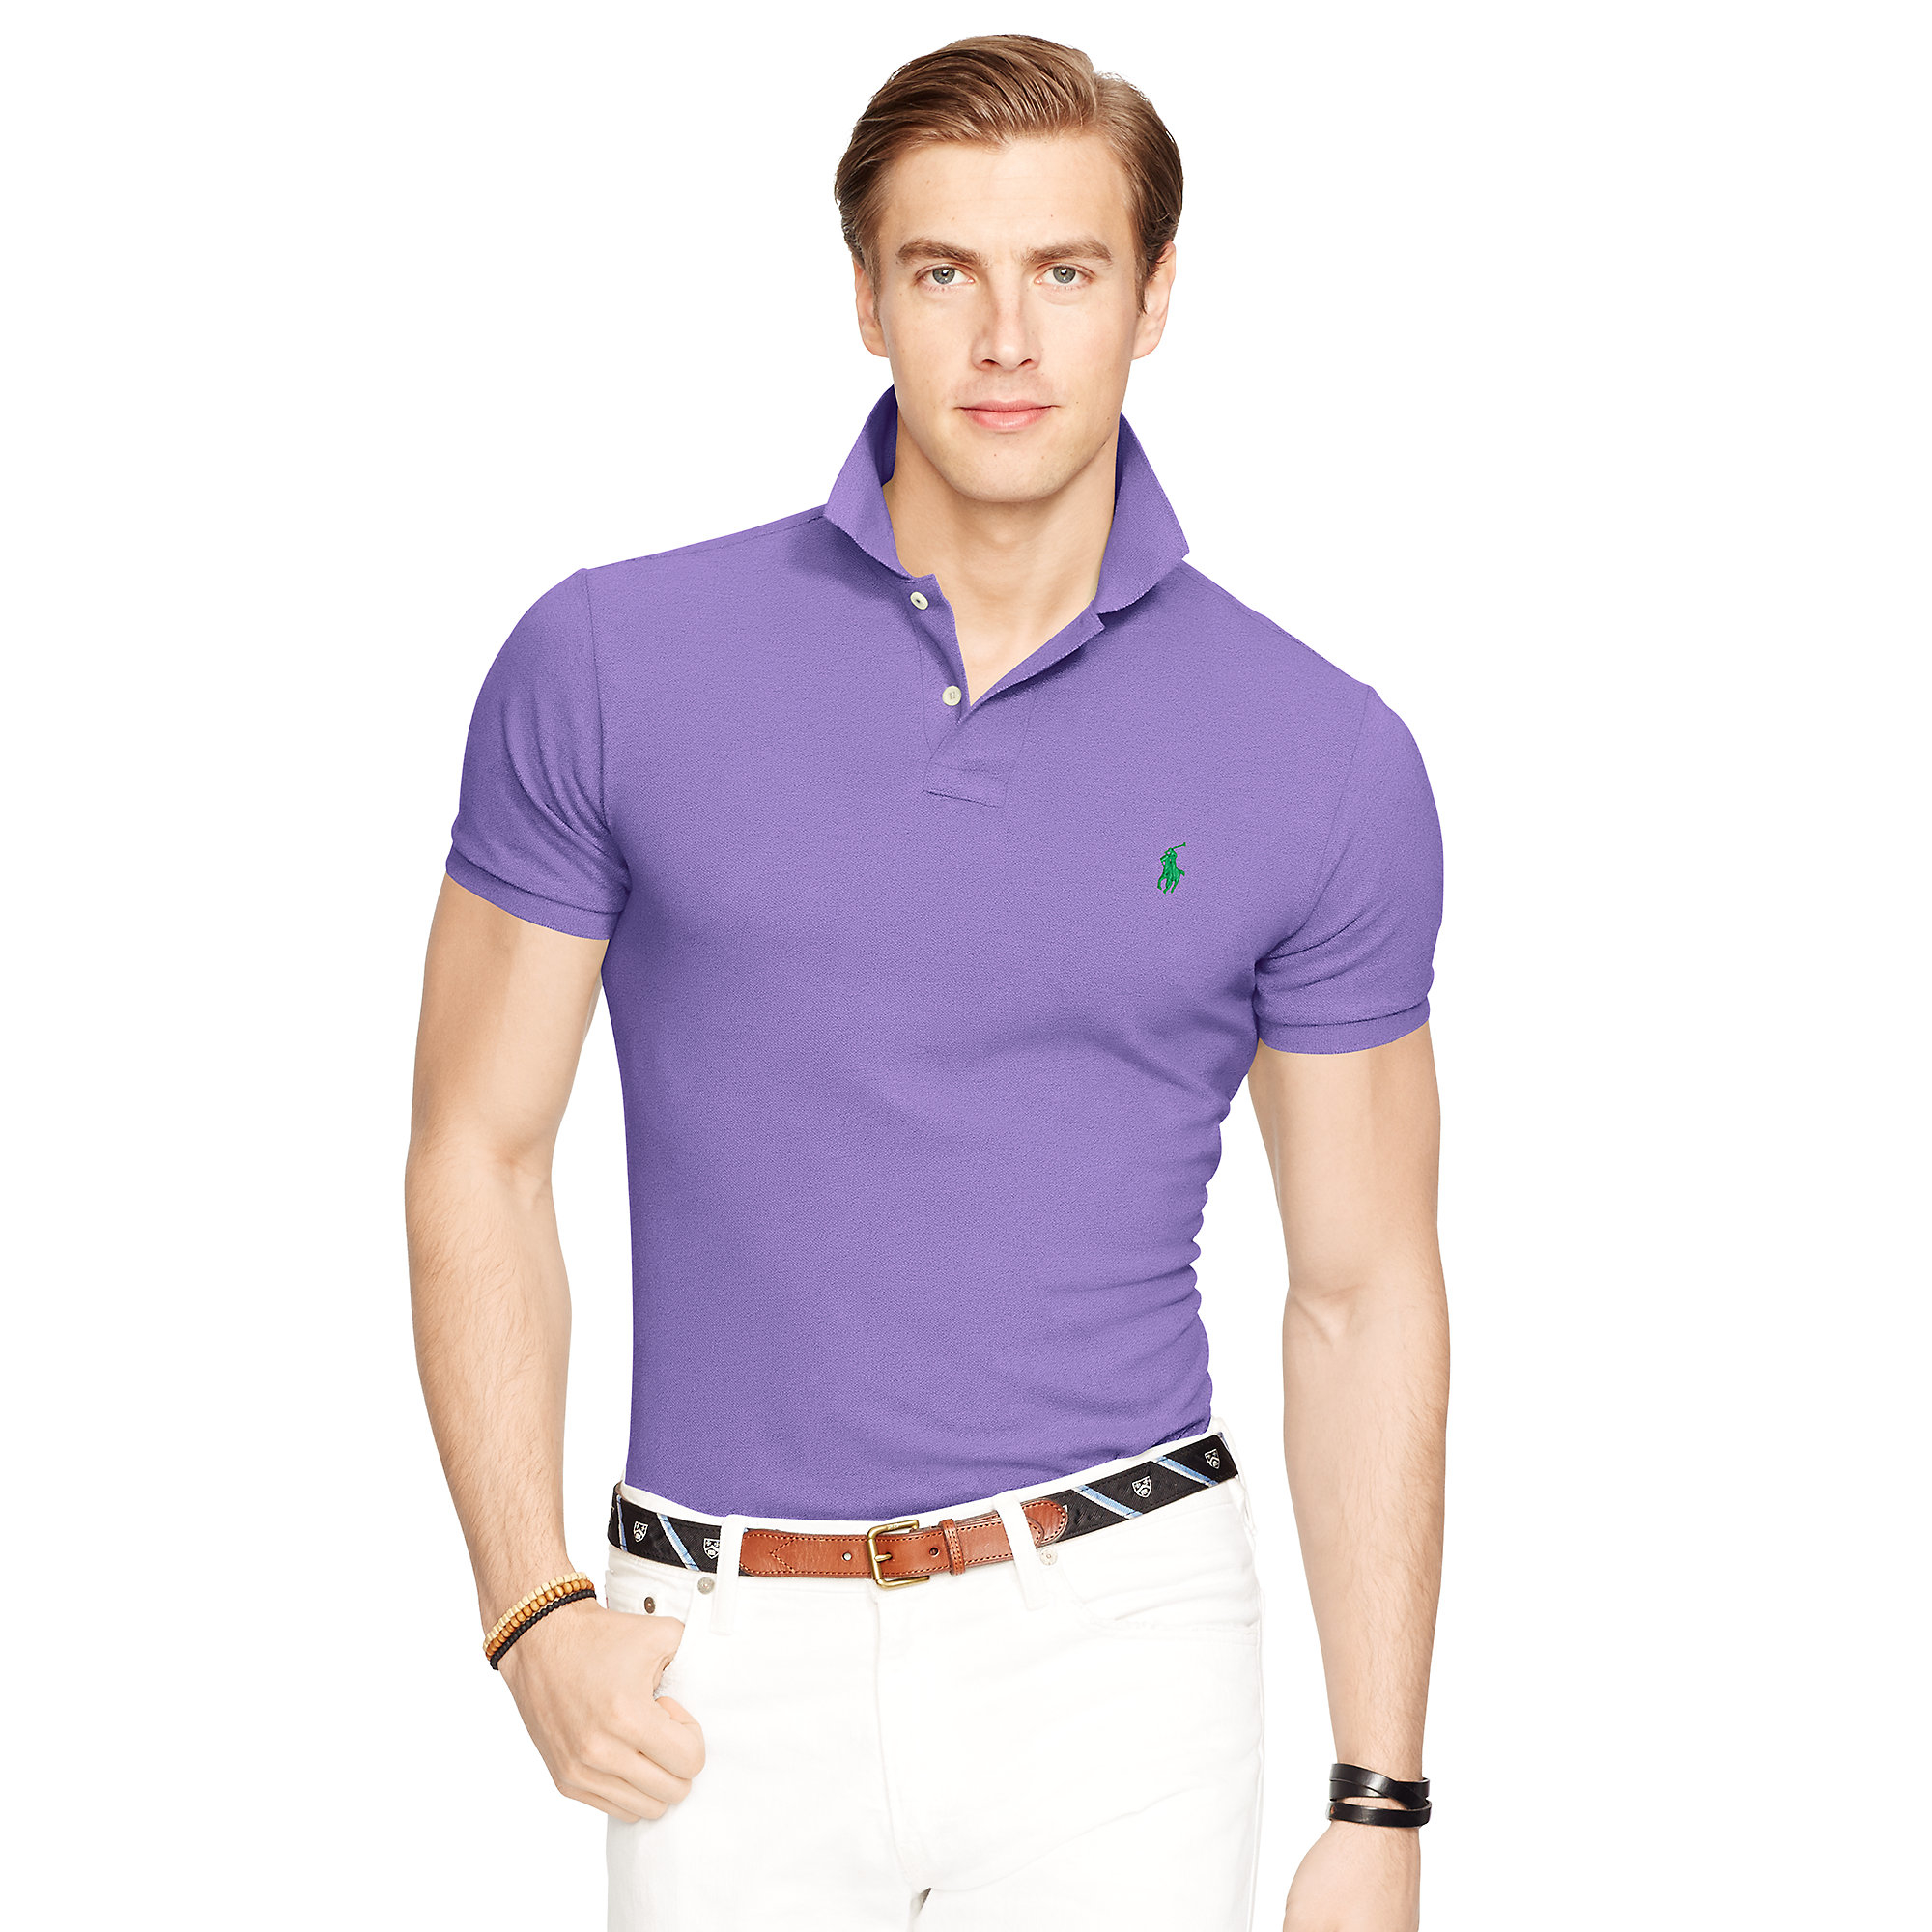 Get Lacoste slim fit polo in petit piqué on our e-shop. Perfectly fitted for urban men, the slim fit is a must-have in your ward-robe. Get Lacoste slim fit polo in petit piqué on our e-shop. Perfectly fitted for urban men, the slim fit is a must-have in your ward-robe. LIFE IS A BEAUTIFUL SPORT.